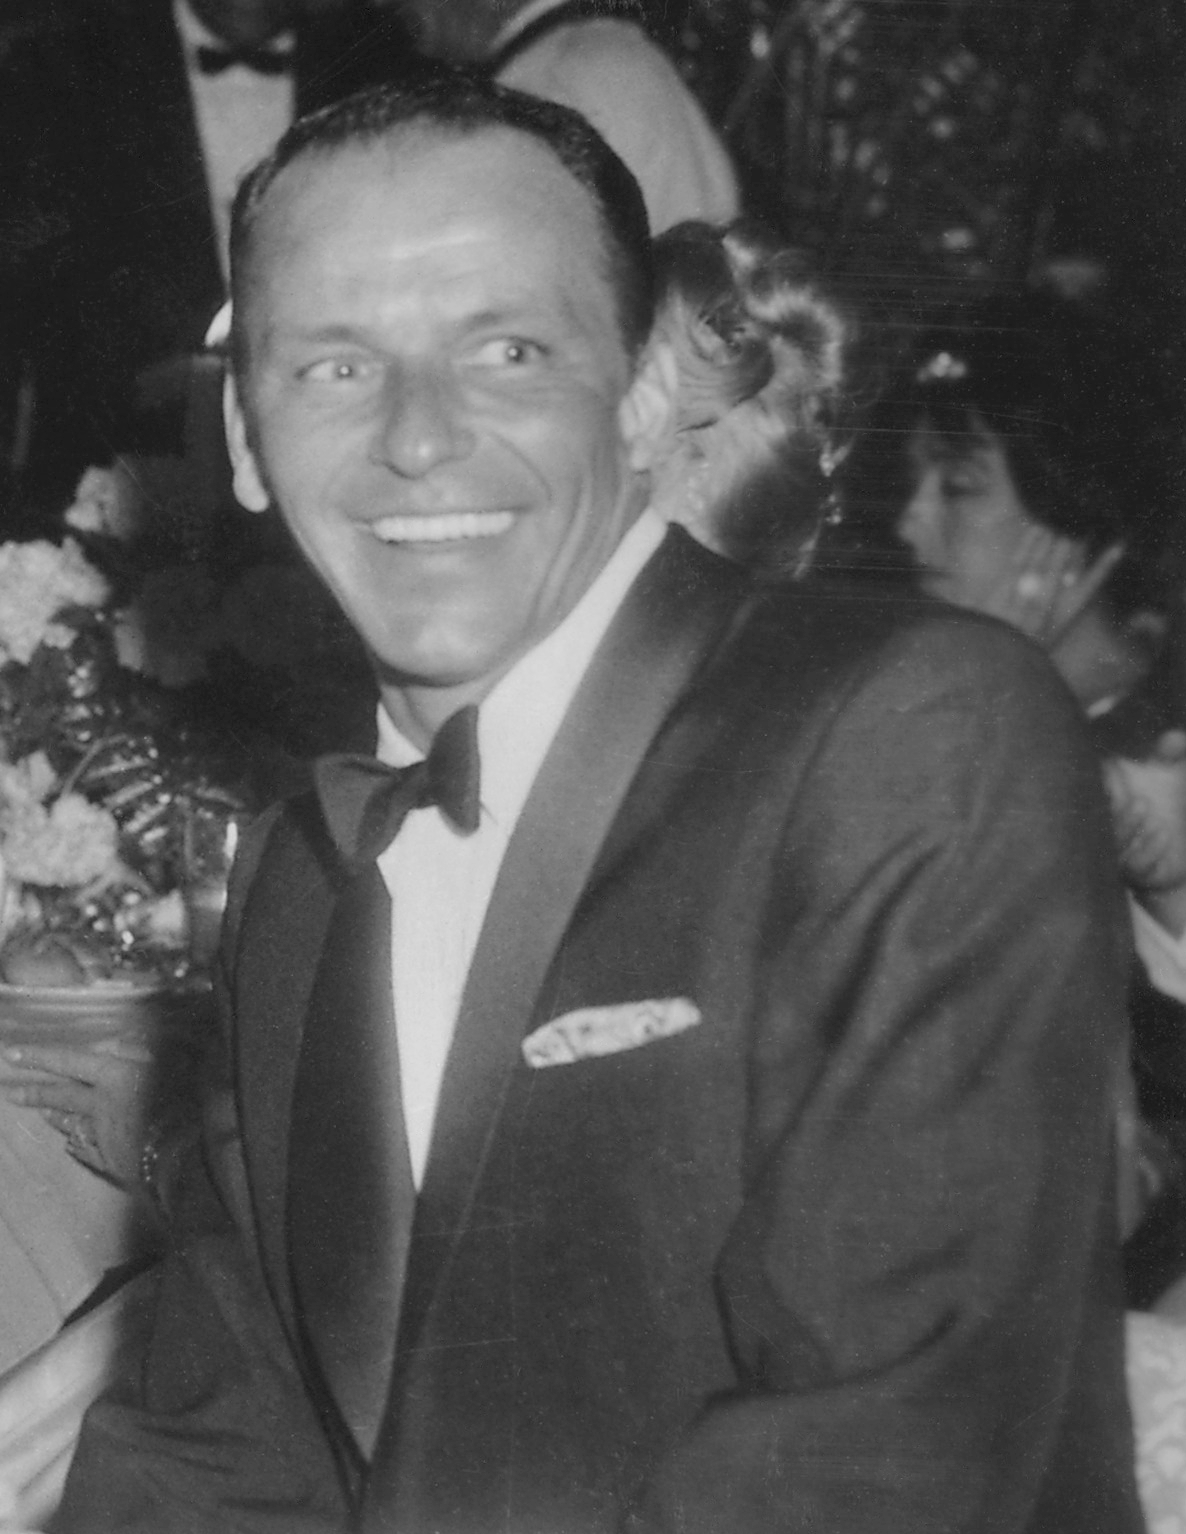 http://upload.wikimedia.org/wikipedia/commons/2/20/Frank_Sinatra_laughing.jpg